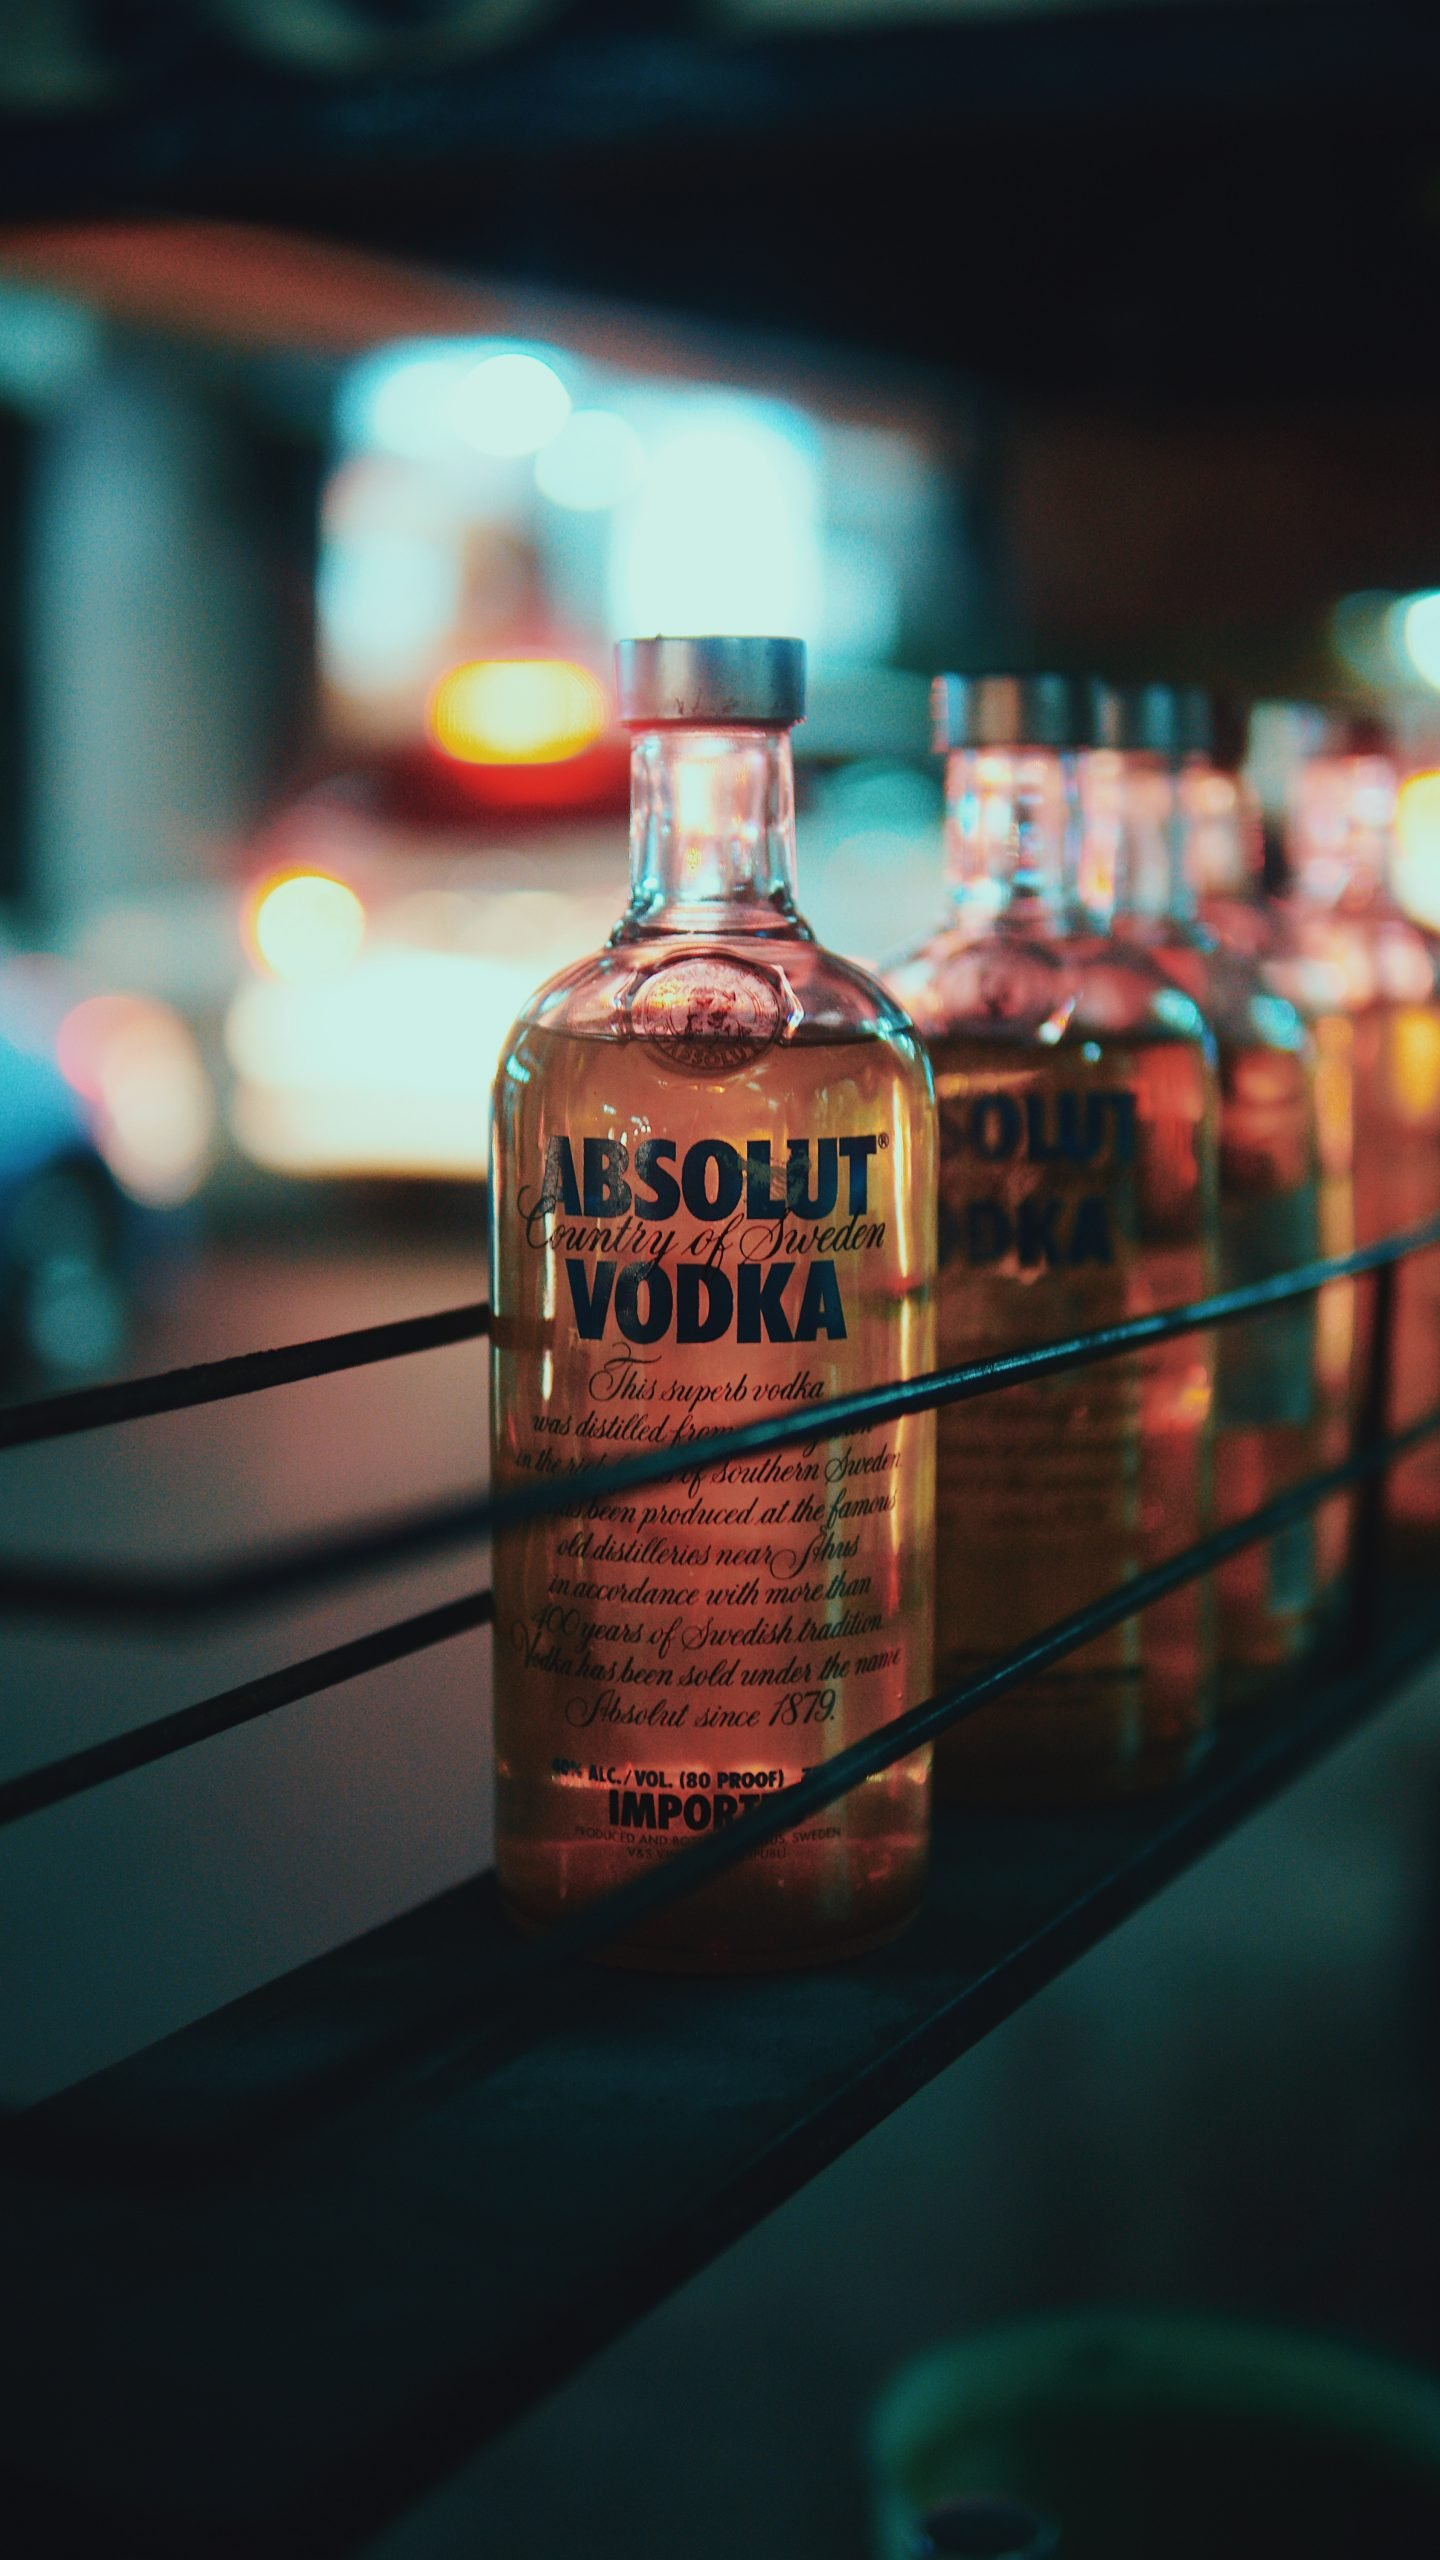 Absolut Vodka bottle lot